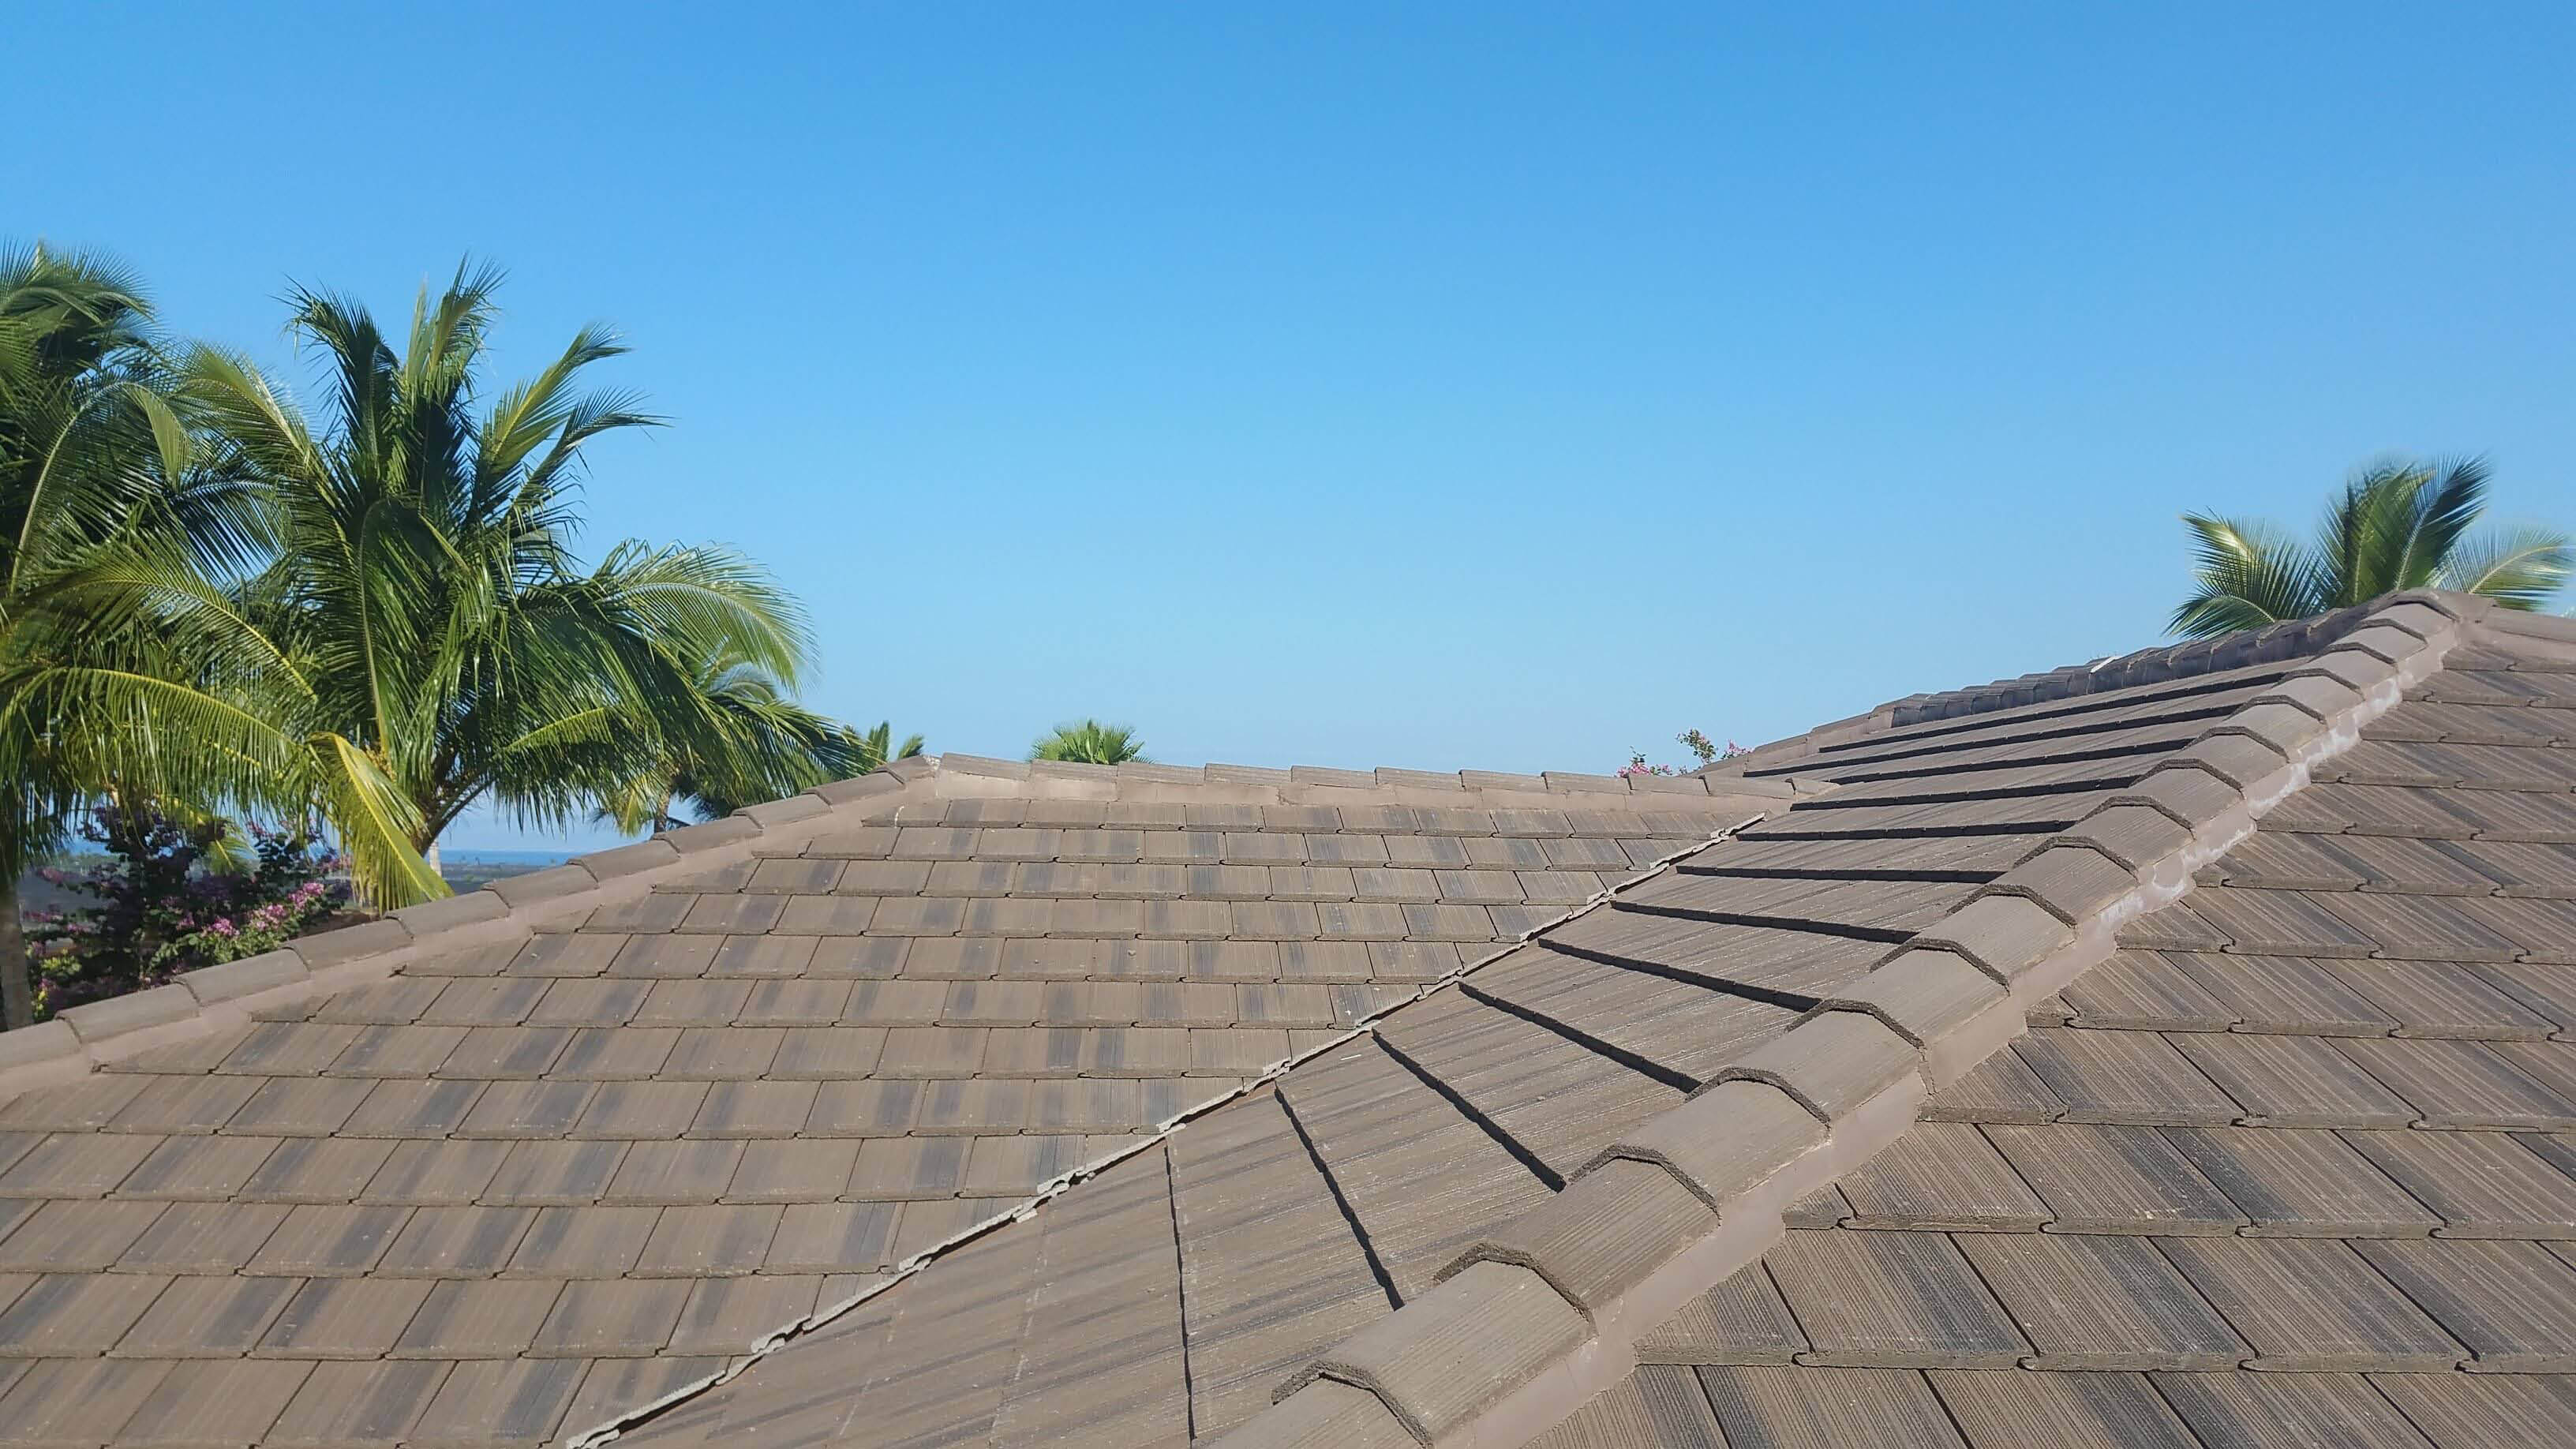 Sherpa Roofing & Construction - tile roof - tile roofing - new roof - re-roof - roof repair - Woodinville roofers - roof replacement